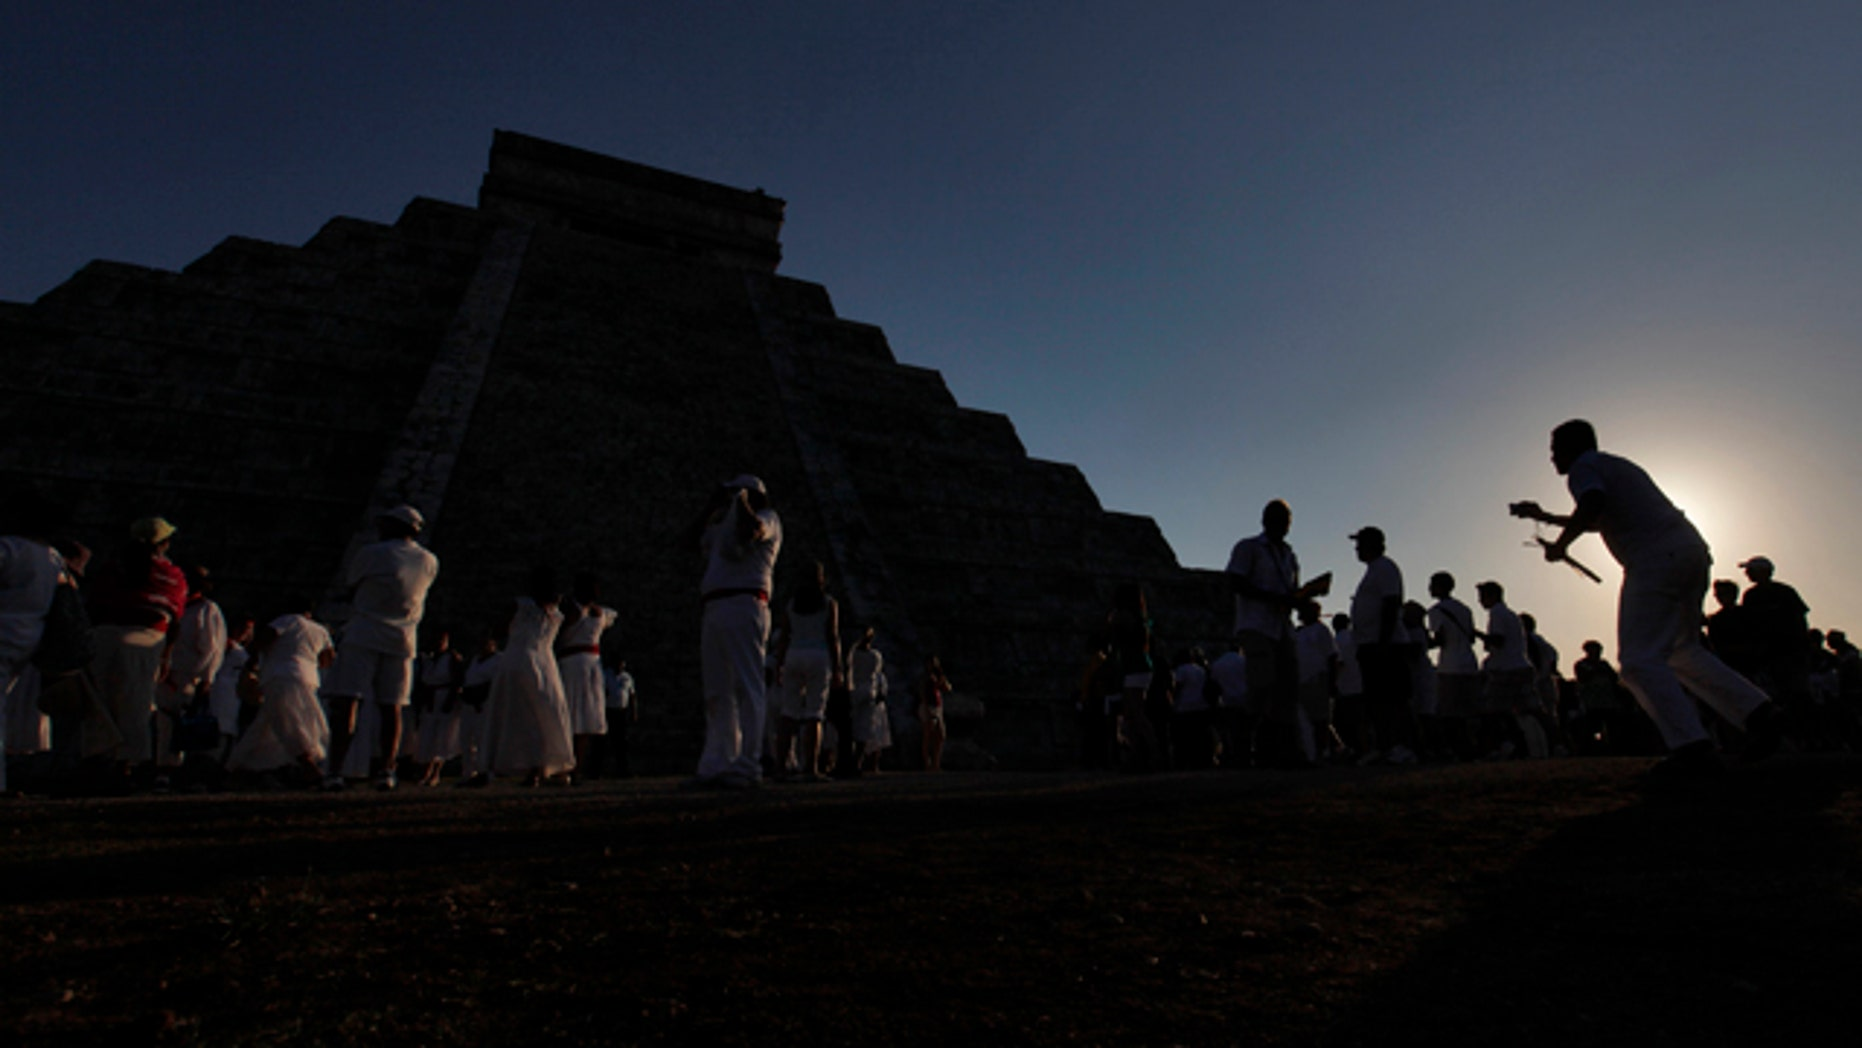 Over 15,000 people congregate in front of the famous pyramid at Chichen-Itza, Mexico to celebrate the arrival of the Equinox signaling the beginning of Spring, Sunday, March 20, 2011.  The famous Mayan ruin is popular at the Equinox when the serpent's back shows on the side of the stairway that leads to the top. (AP Photo/Standard Times , Peter Pereira)